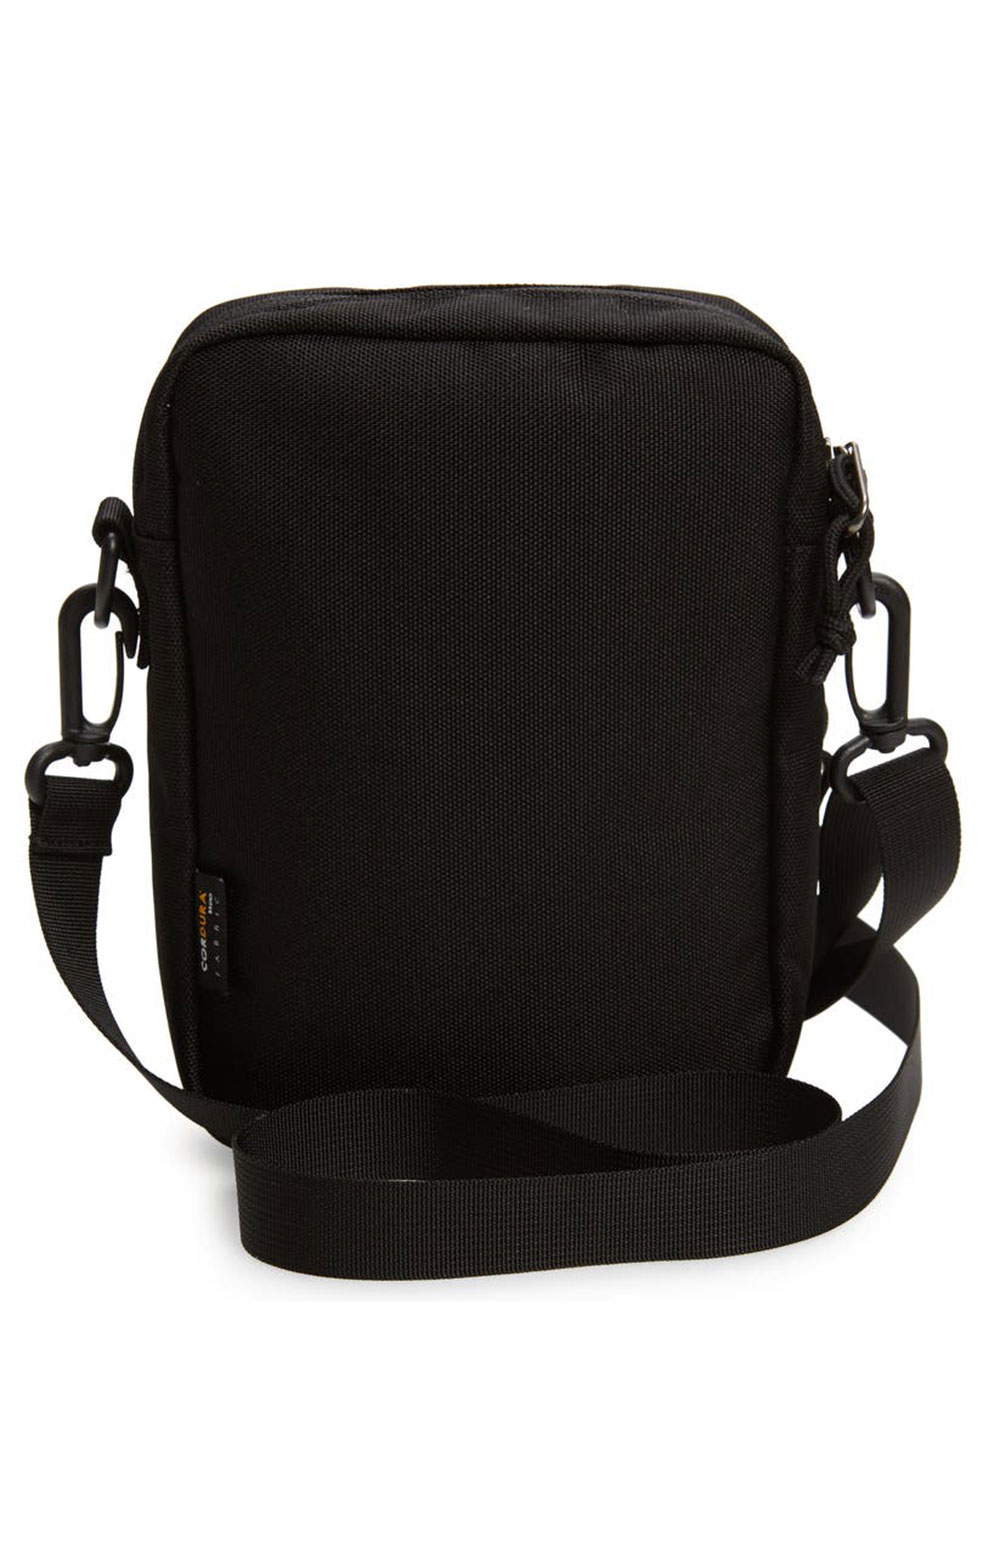 Construct Shoulder Bag- Black 2